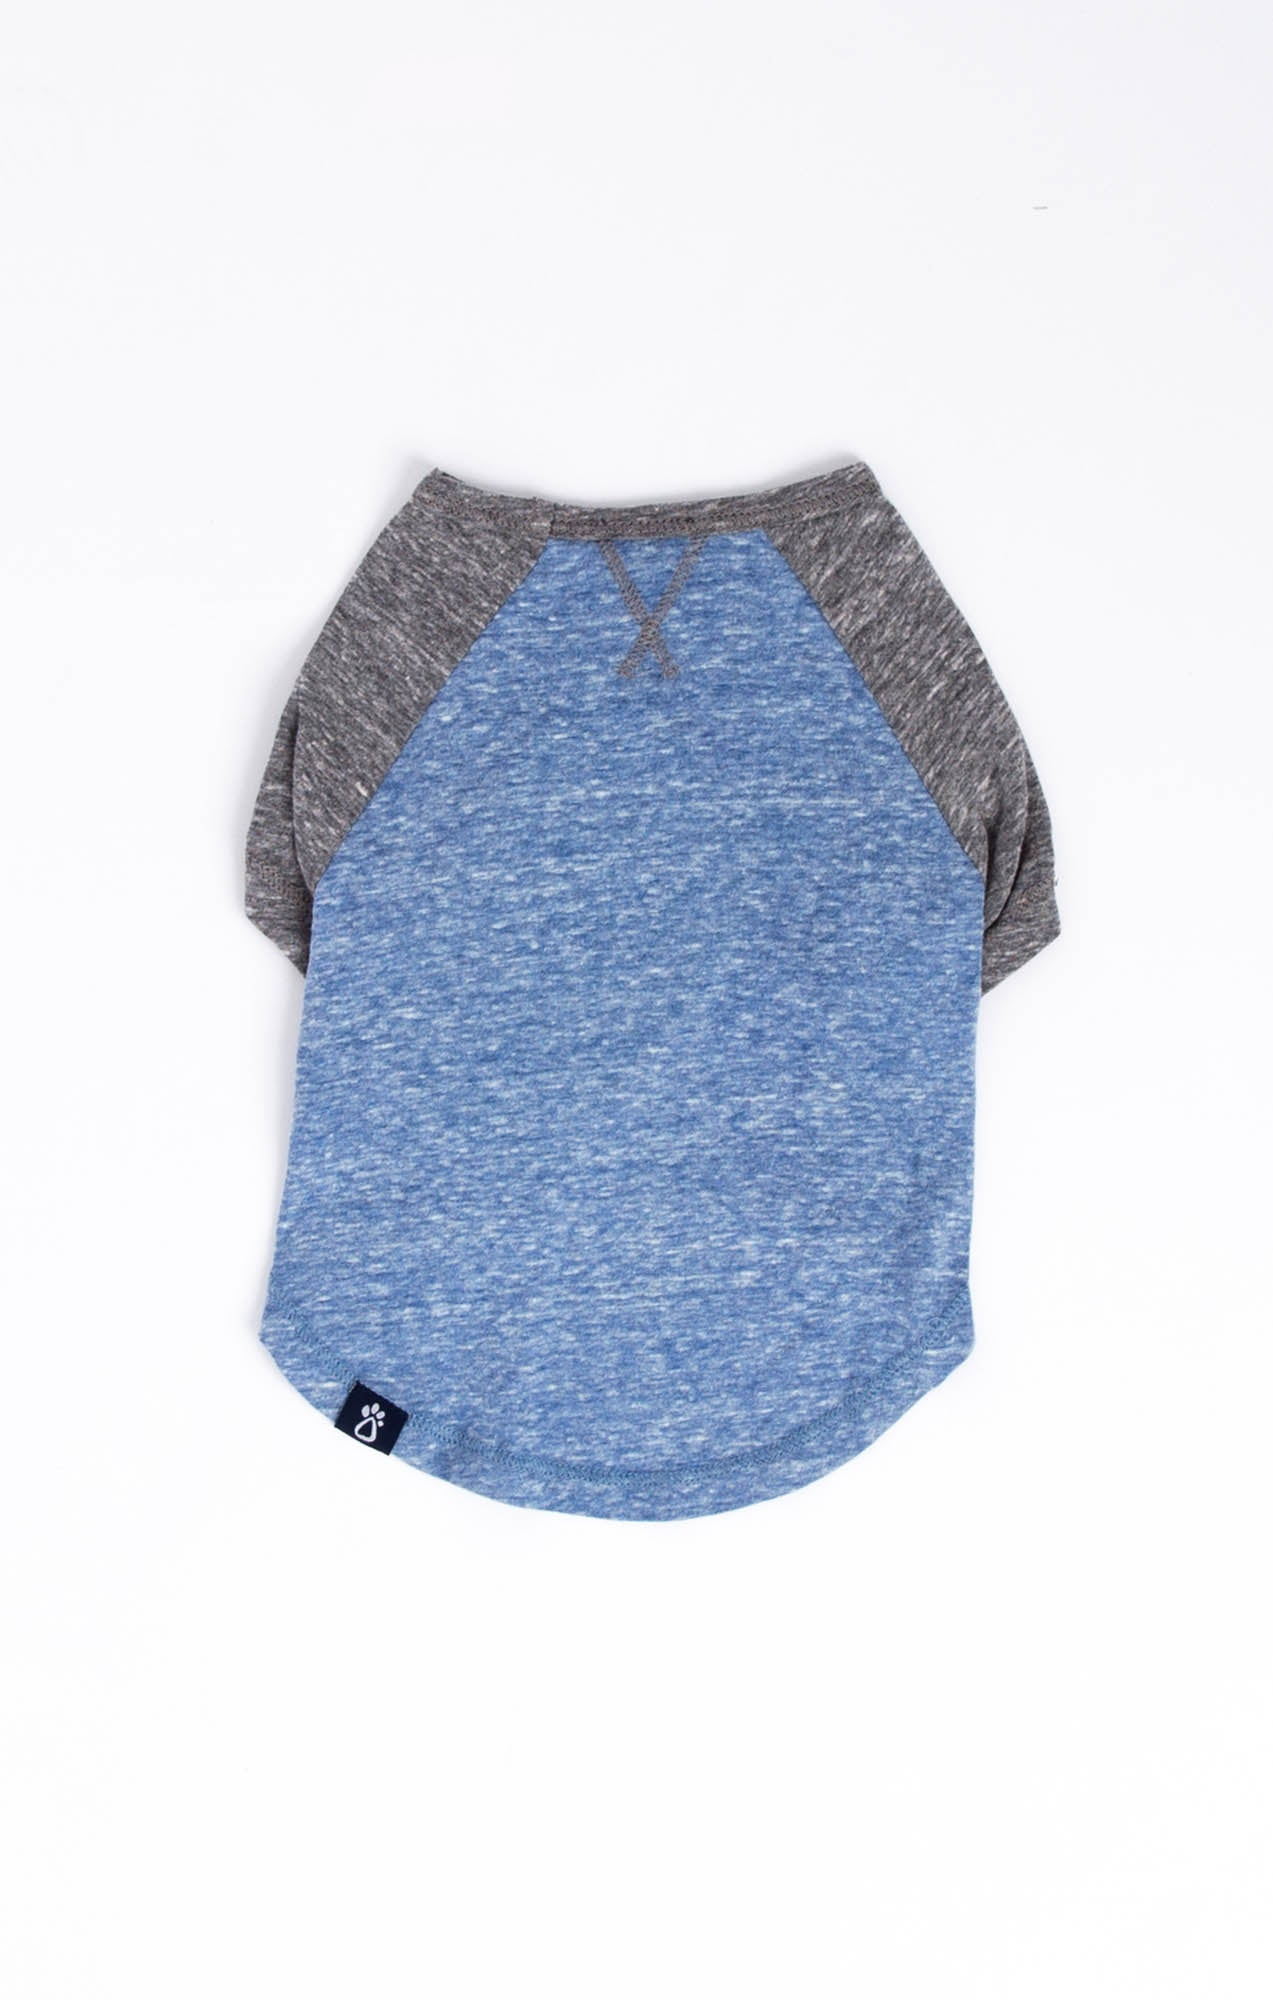 Tops The Sno Yarn Baseball Tee by ZOO SUPPLY Black Iris/Heather Grey